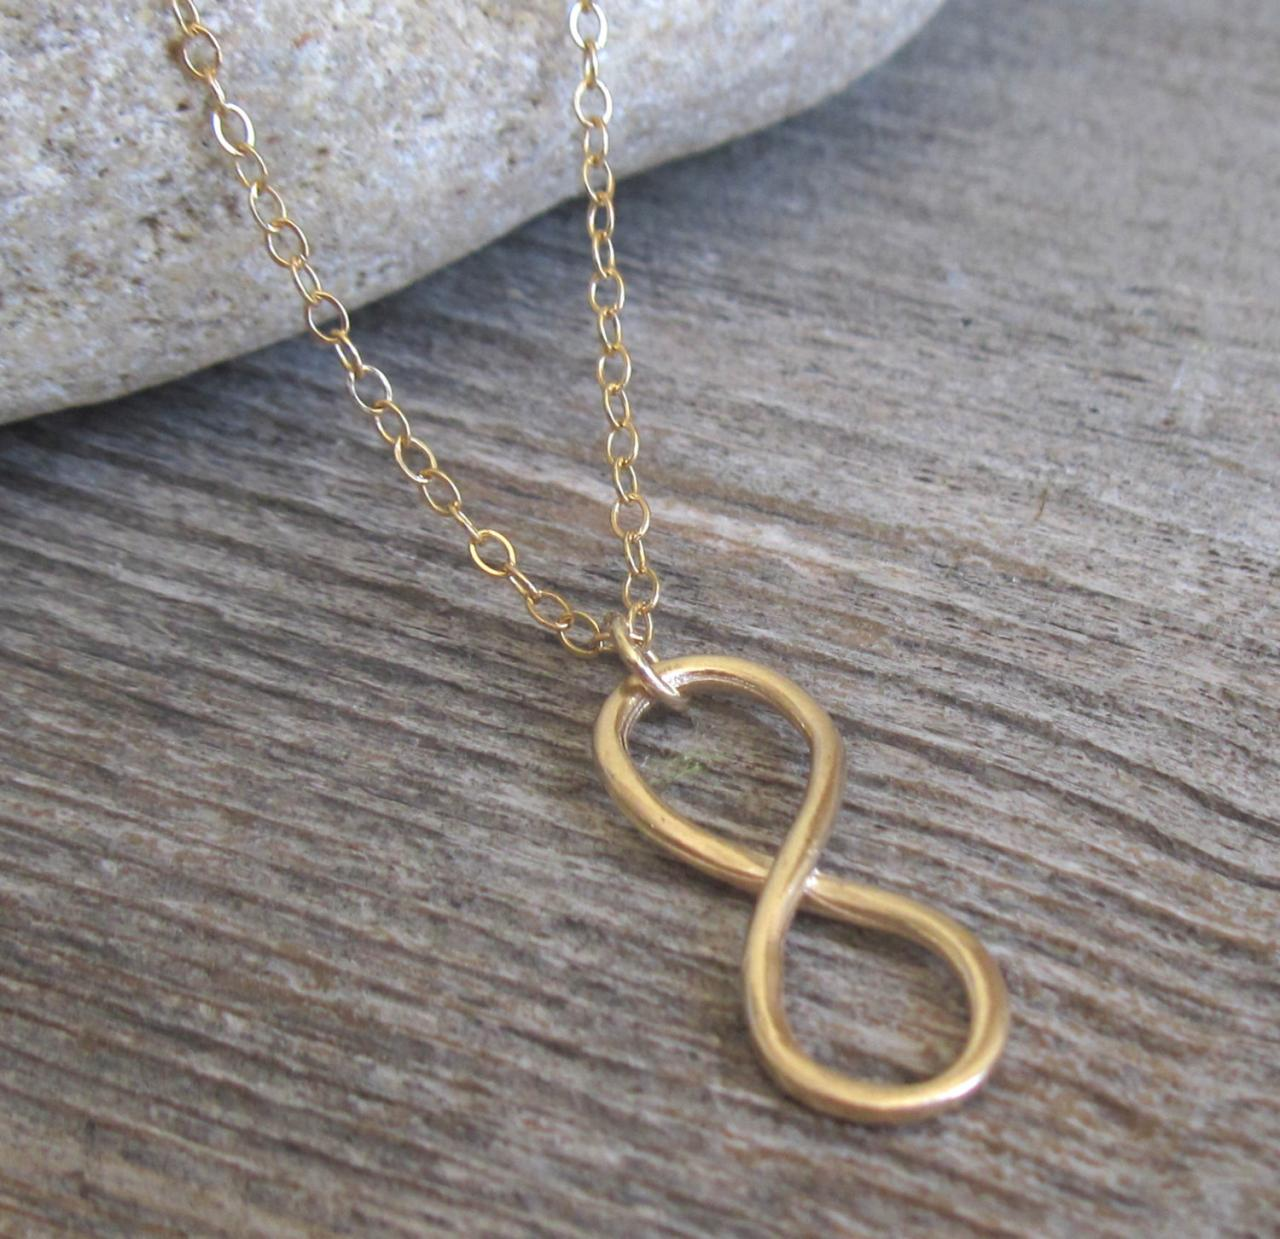 Men's Necklace - Men's Infinity Necklace - Men's Gold Necklace - Mens Jewelry - Necklaces For Men - Jewelry For Men - Gift for Him